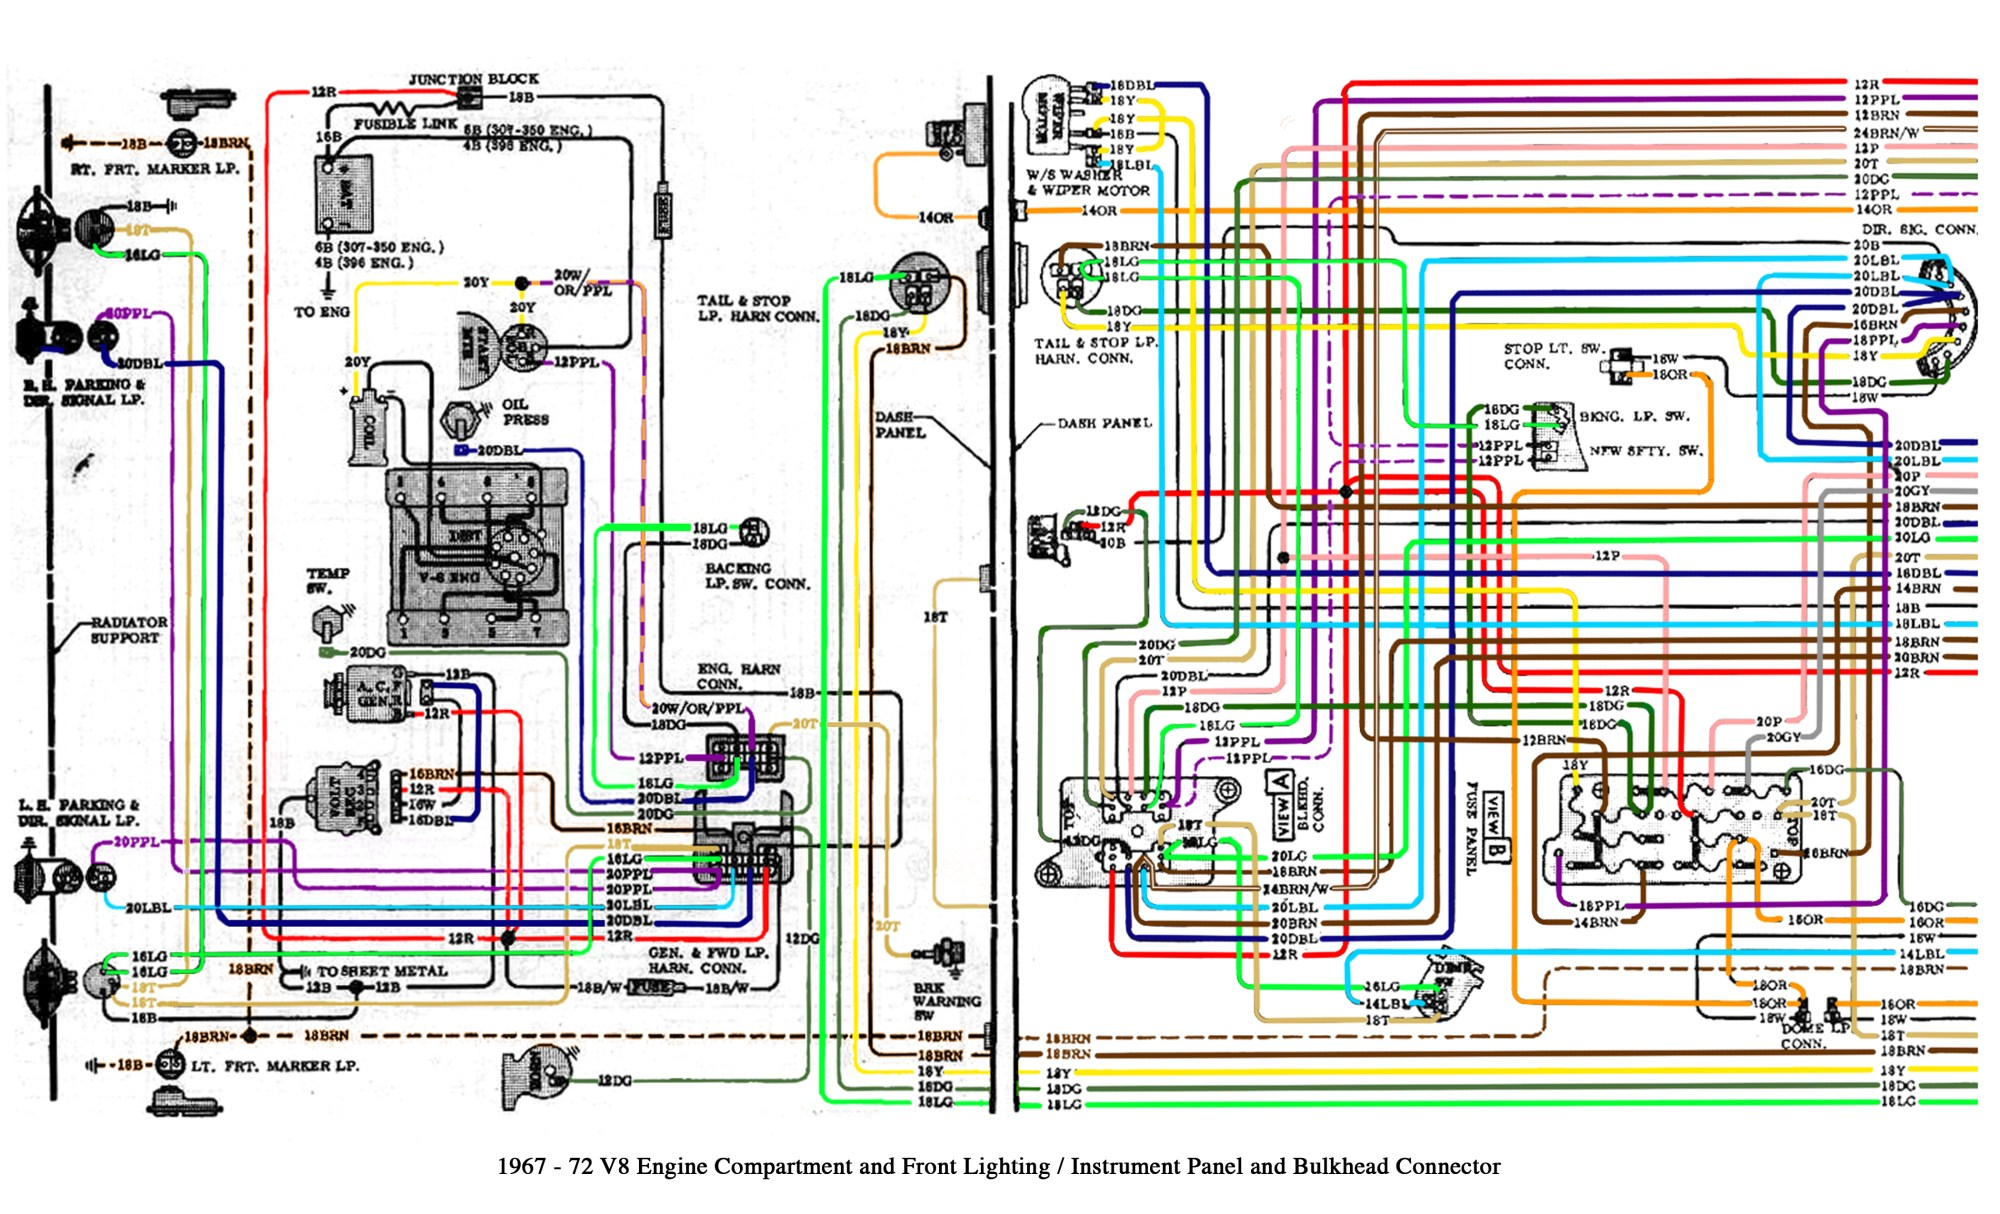 hight resolution of 1971 chevy c10 wiring diagram wiring diagram fascinating 1971 chevy truck wiring diagram 1971 chevy c10